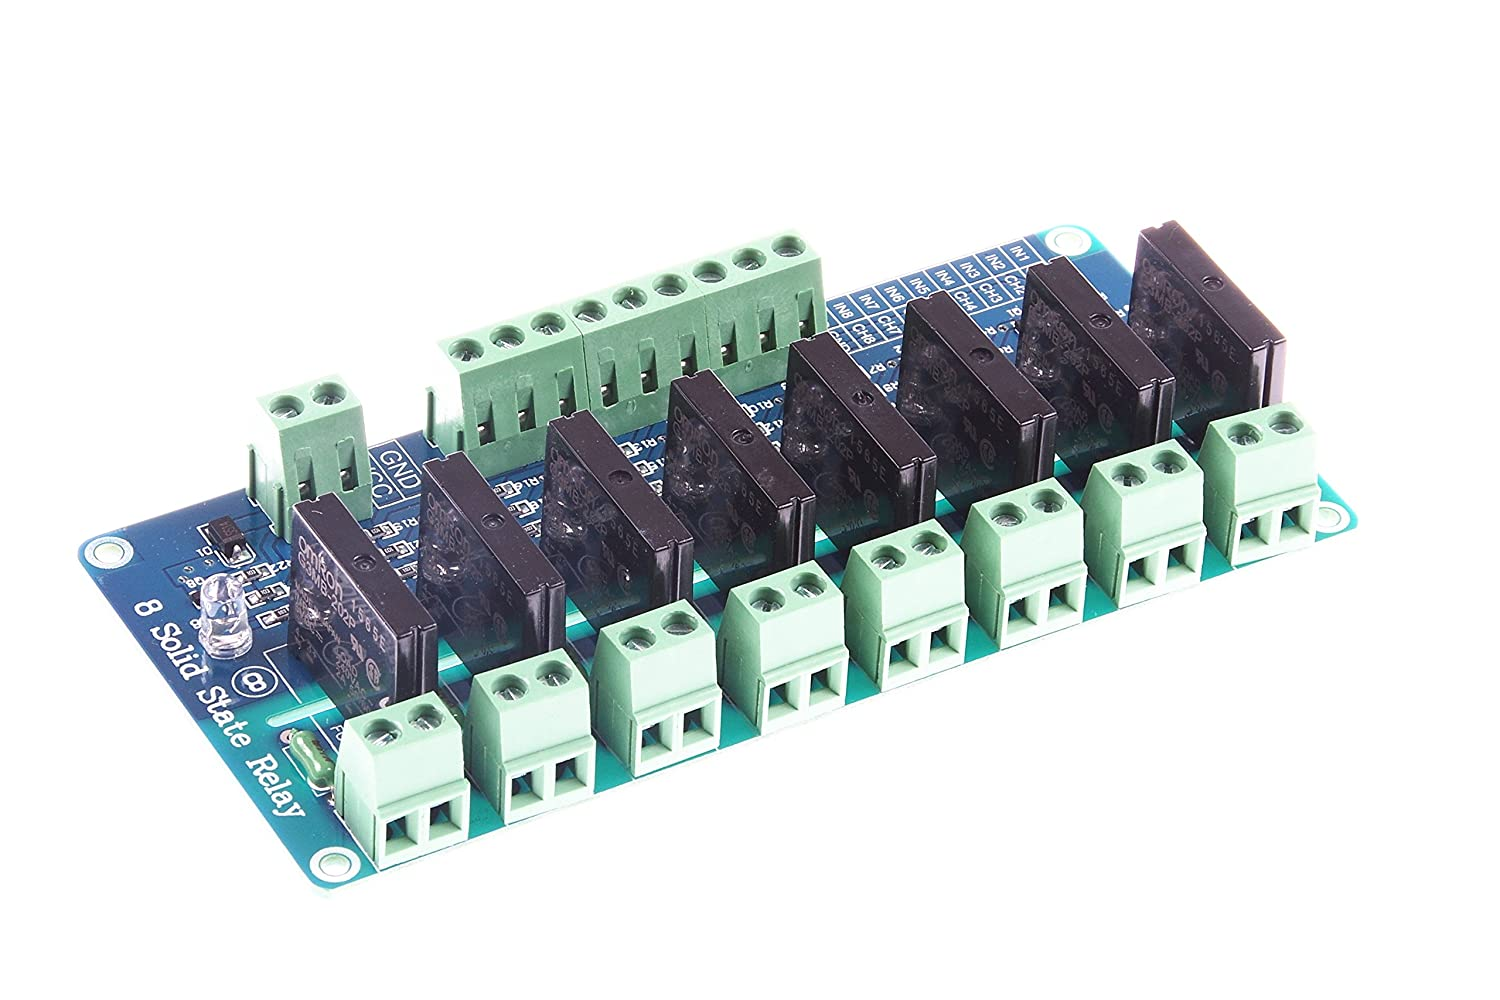 Knacro 8 Channel 5v Low Level Solid State Relay Module Dc 1 Board High Fuse For 240v 2a With Resistive Arduino Uno Duemilanove Avr Mega2560 Mega1280 Arm